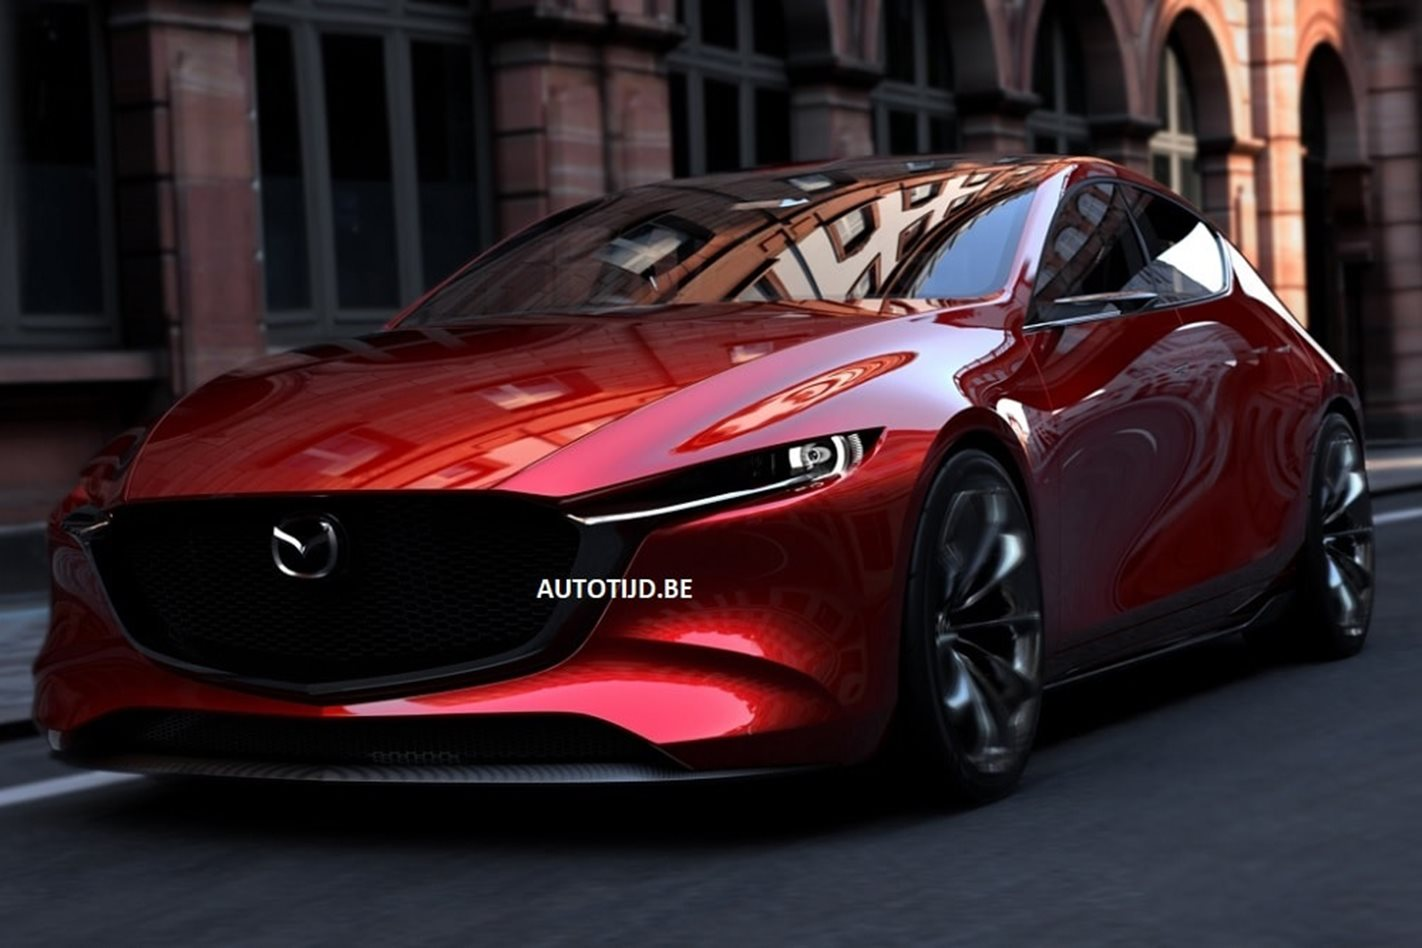 2017 Tokyo Motor Show 2018 Mazda 3 Images Leaked Ahead Of Official